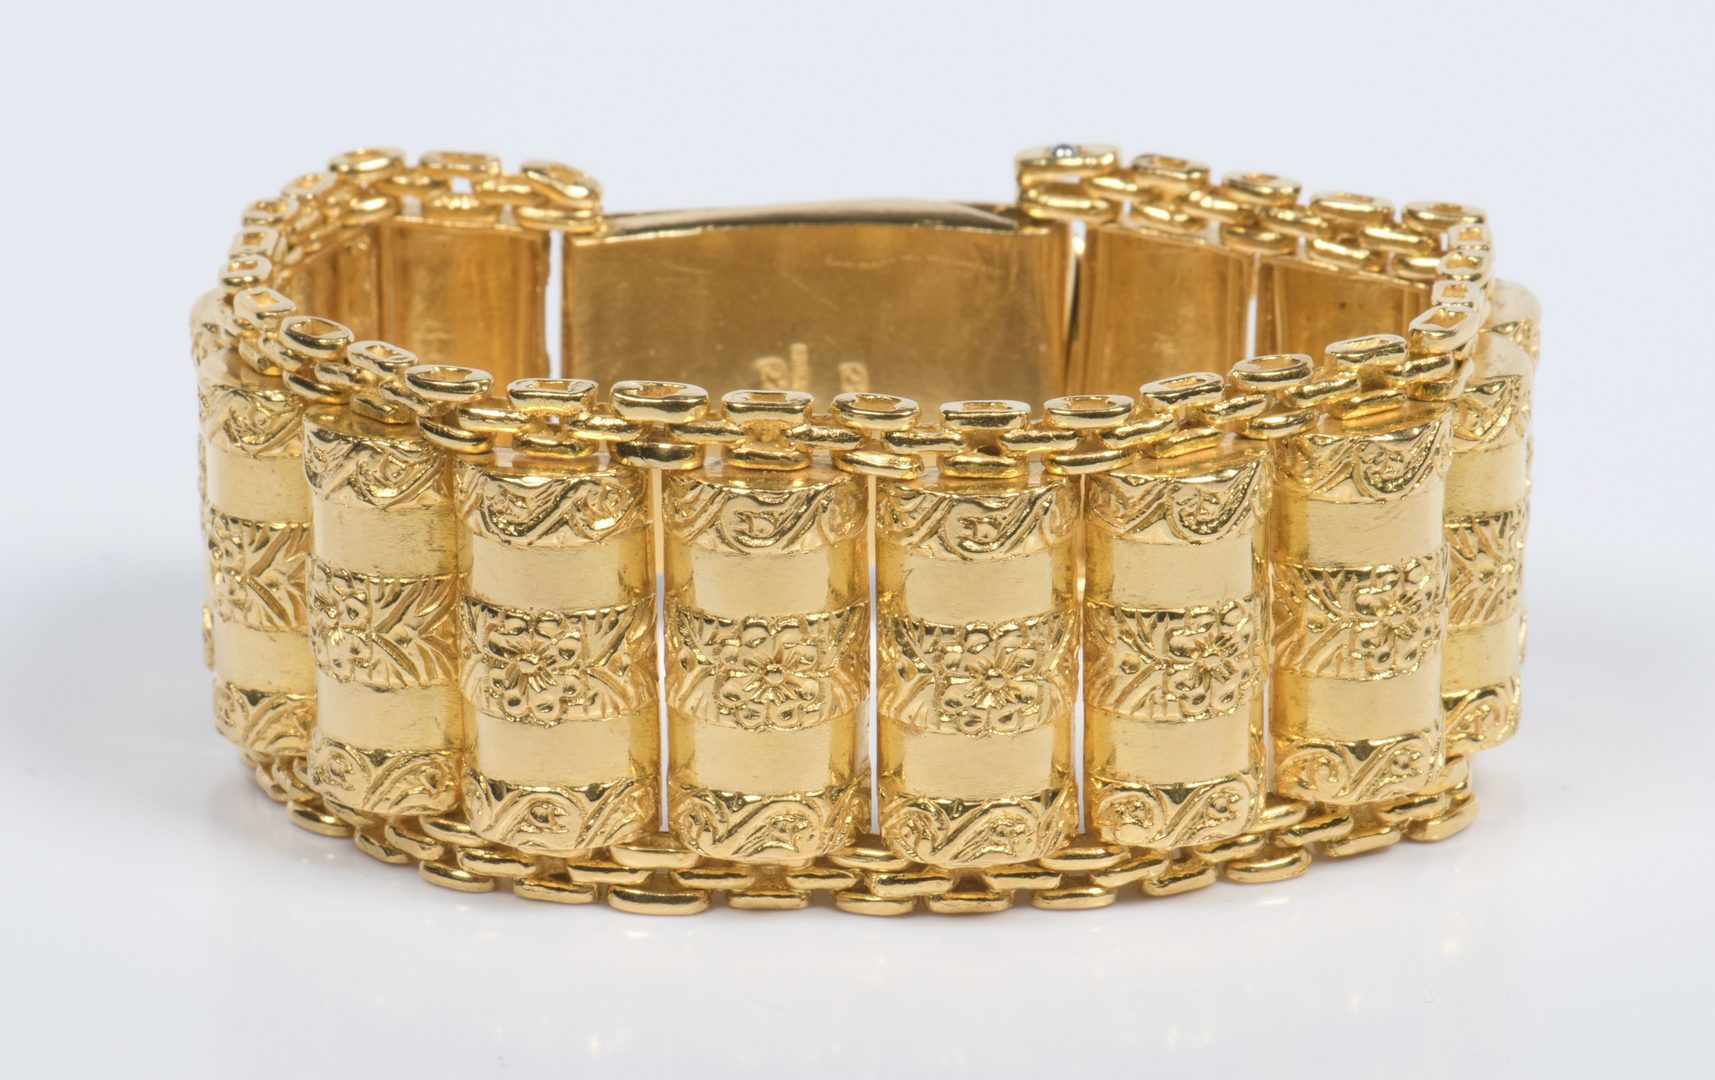 Lot 46: 22K Wide Link Bracelet, 115.4 grams